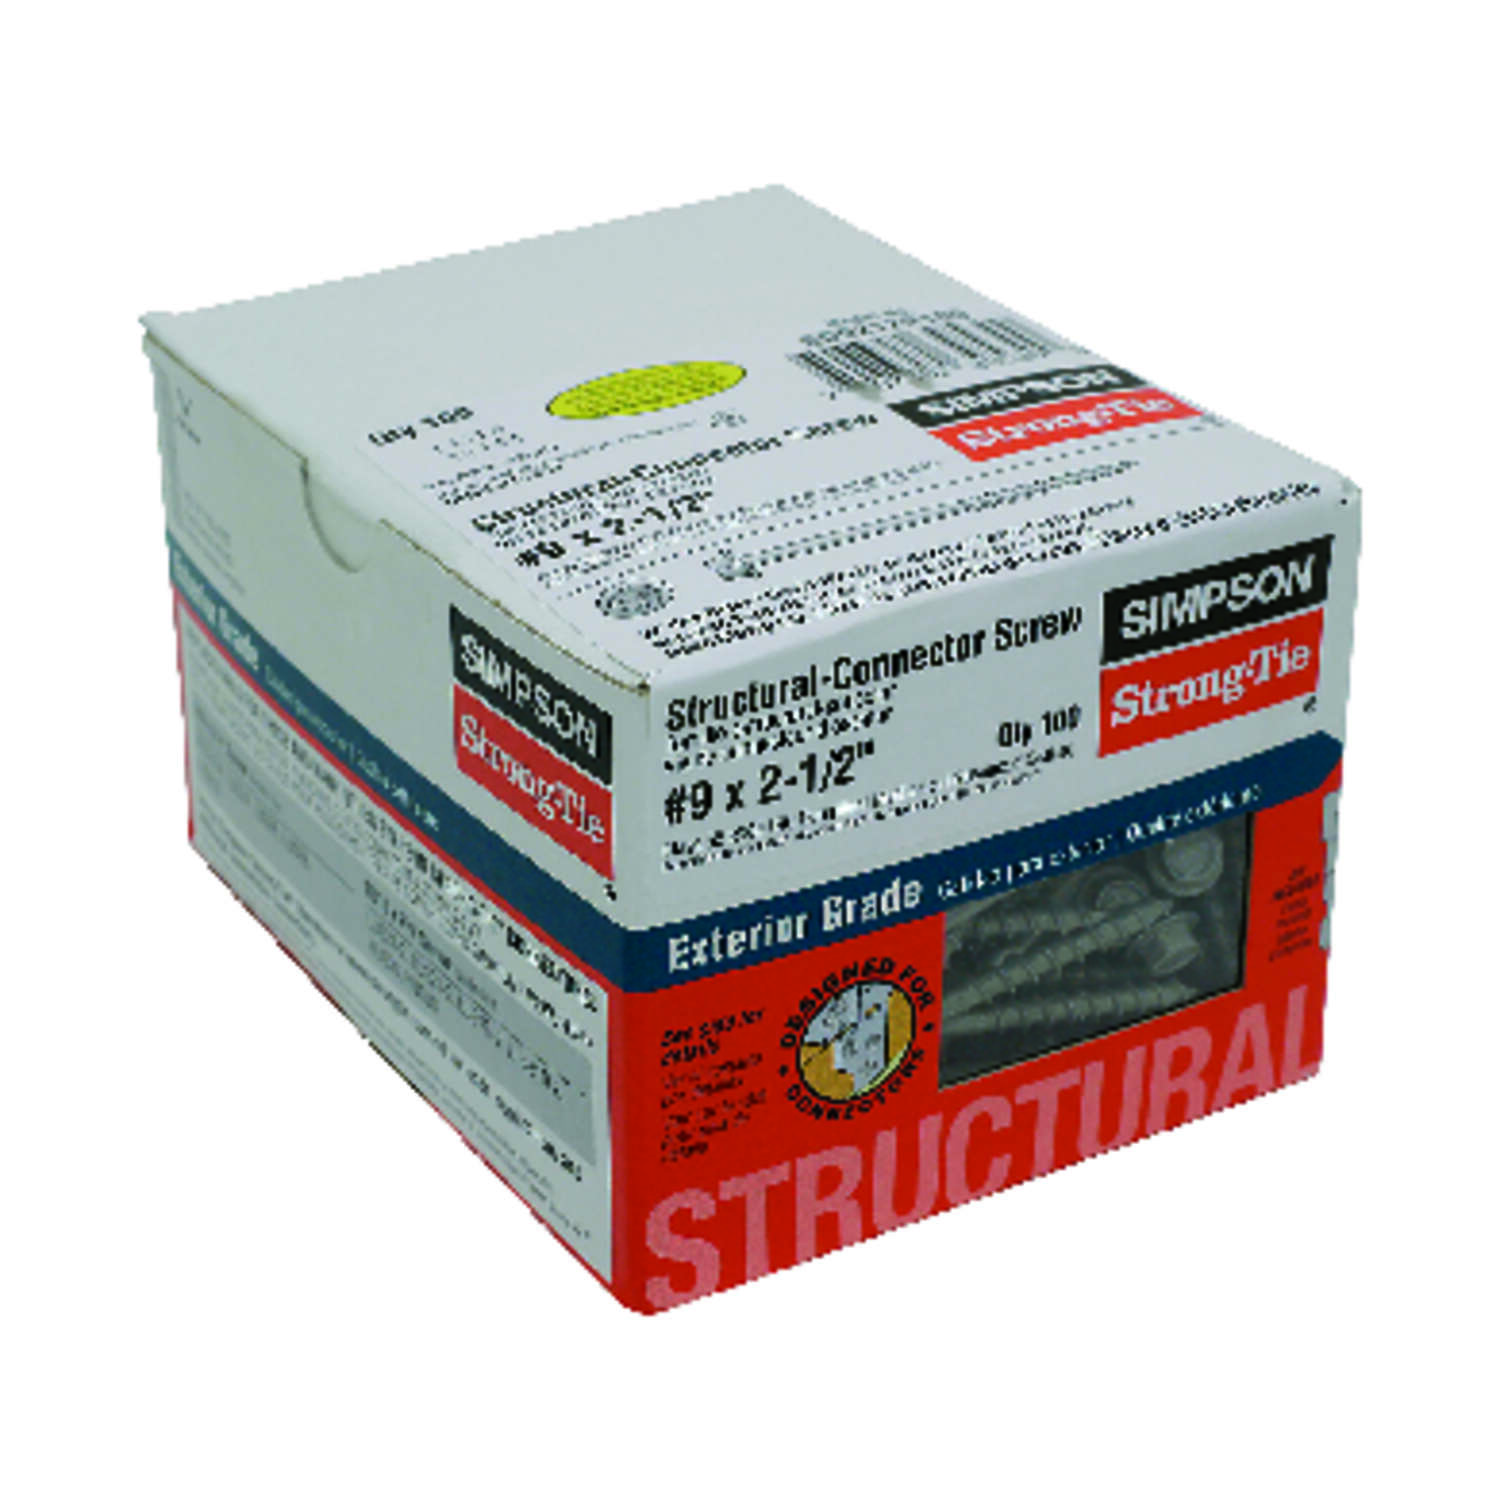 Simpson Strong-Tie  Strong-Drive  No. 9   x 2-1/2 in. L Star  Hex Head Connector Screw  1.1 lb. 100